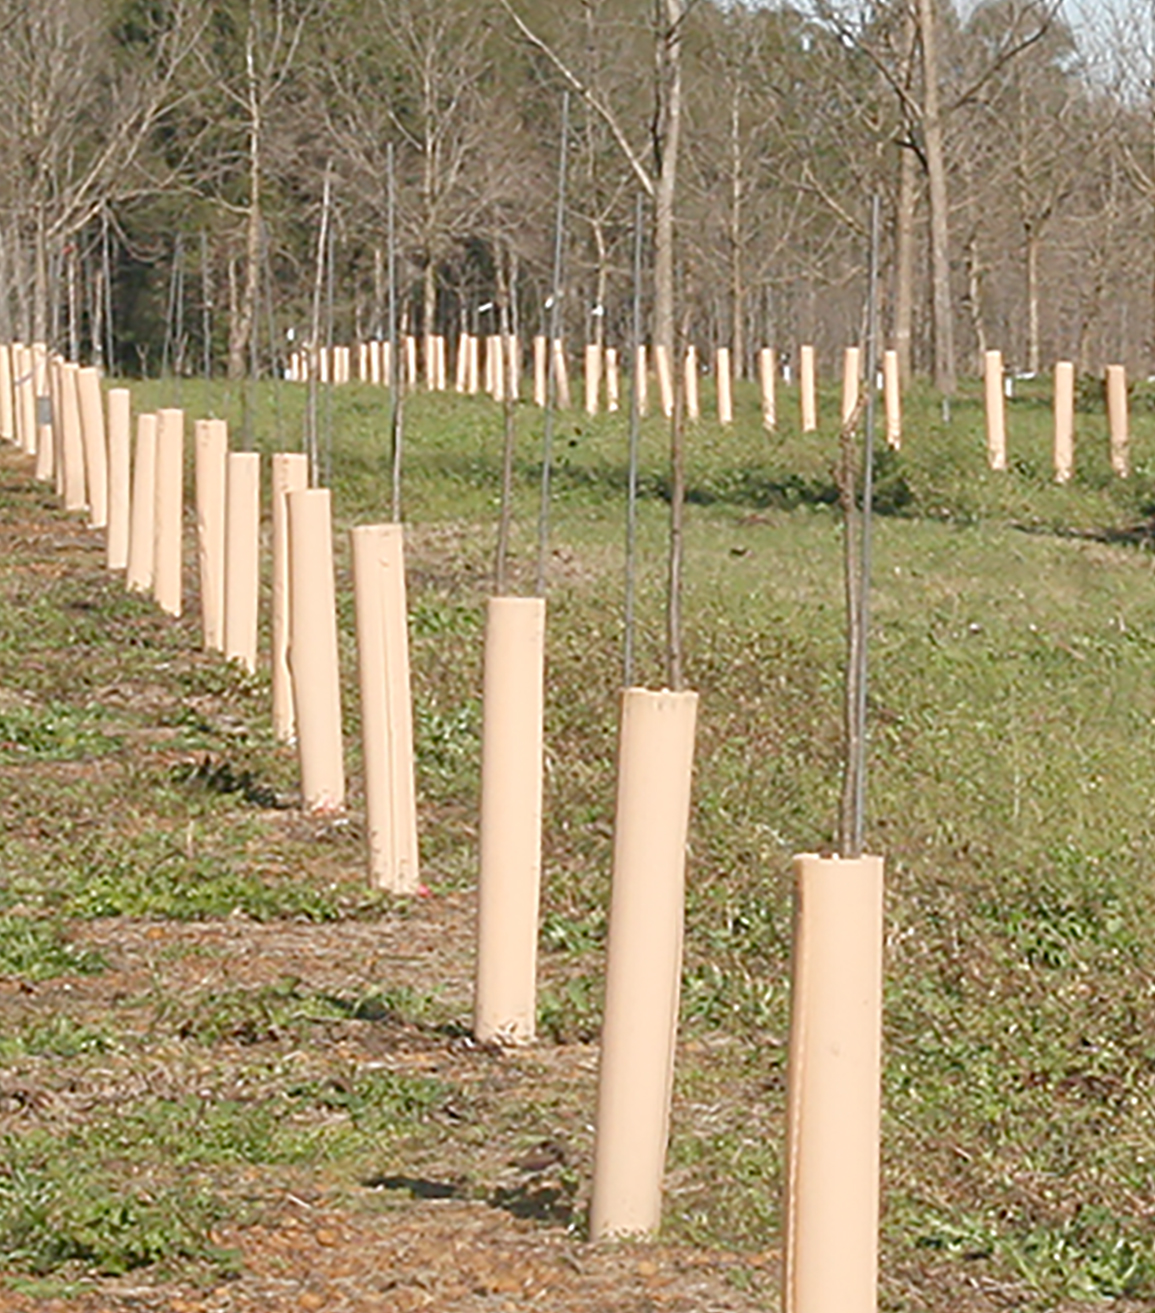 Young, immature pecan trees are seen at the Ponder Farm on the UGA Tifton Campus on Jan. 5, 2016.